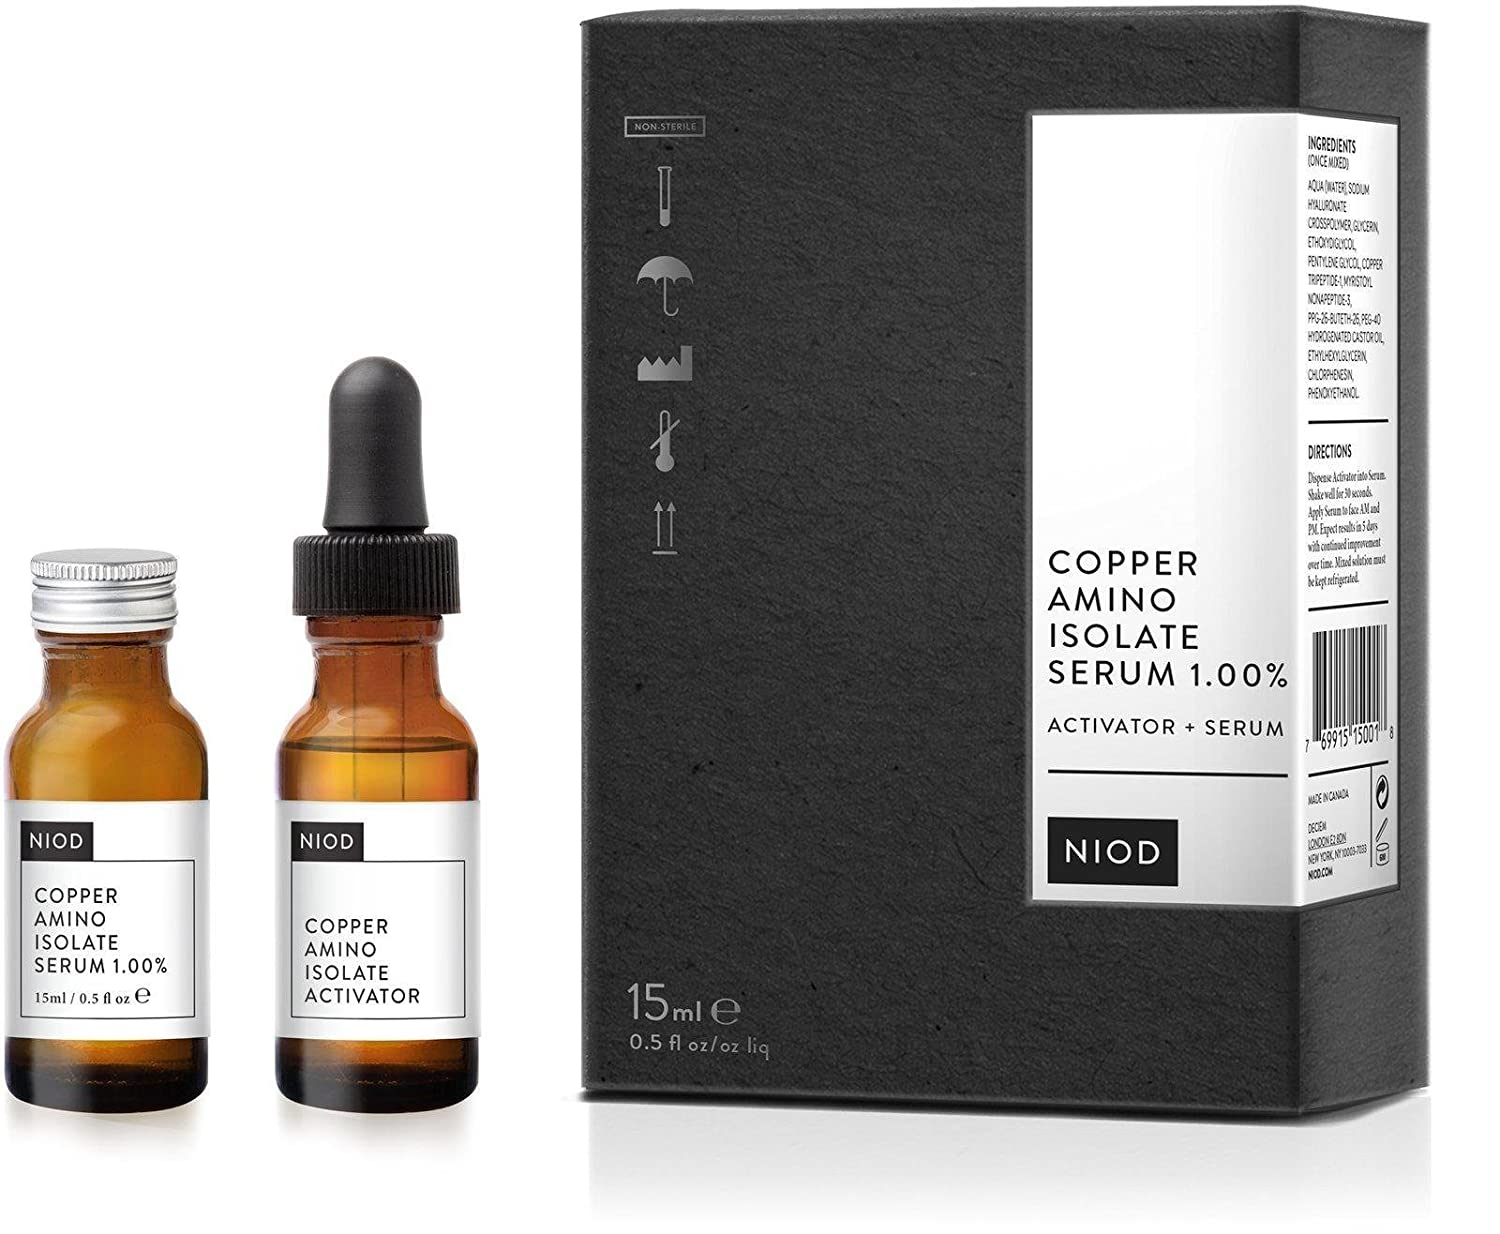 Image result for niod copper amino isolate serum